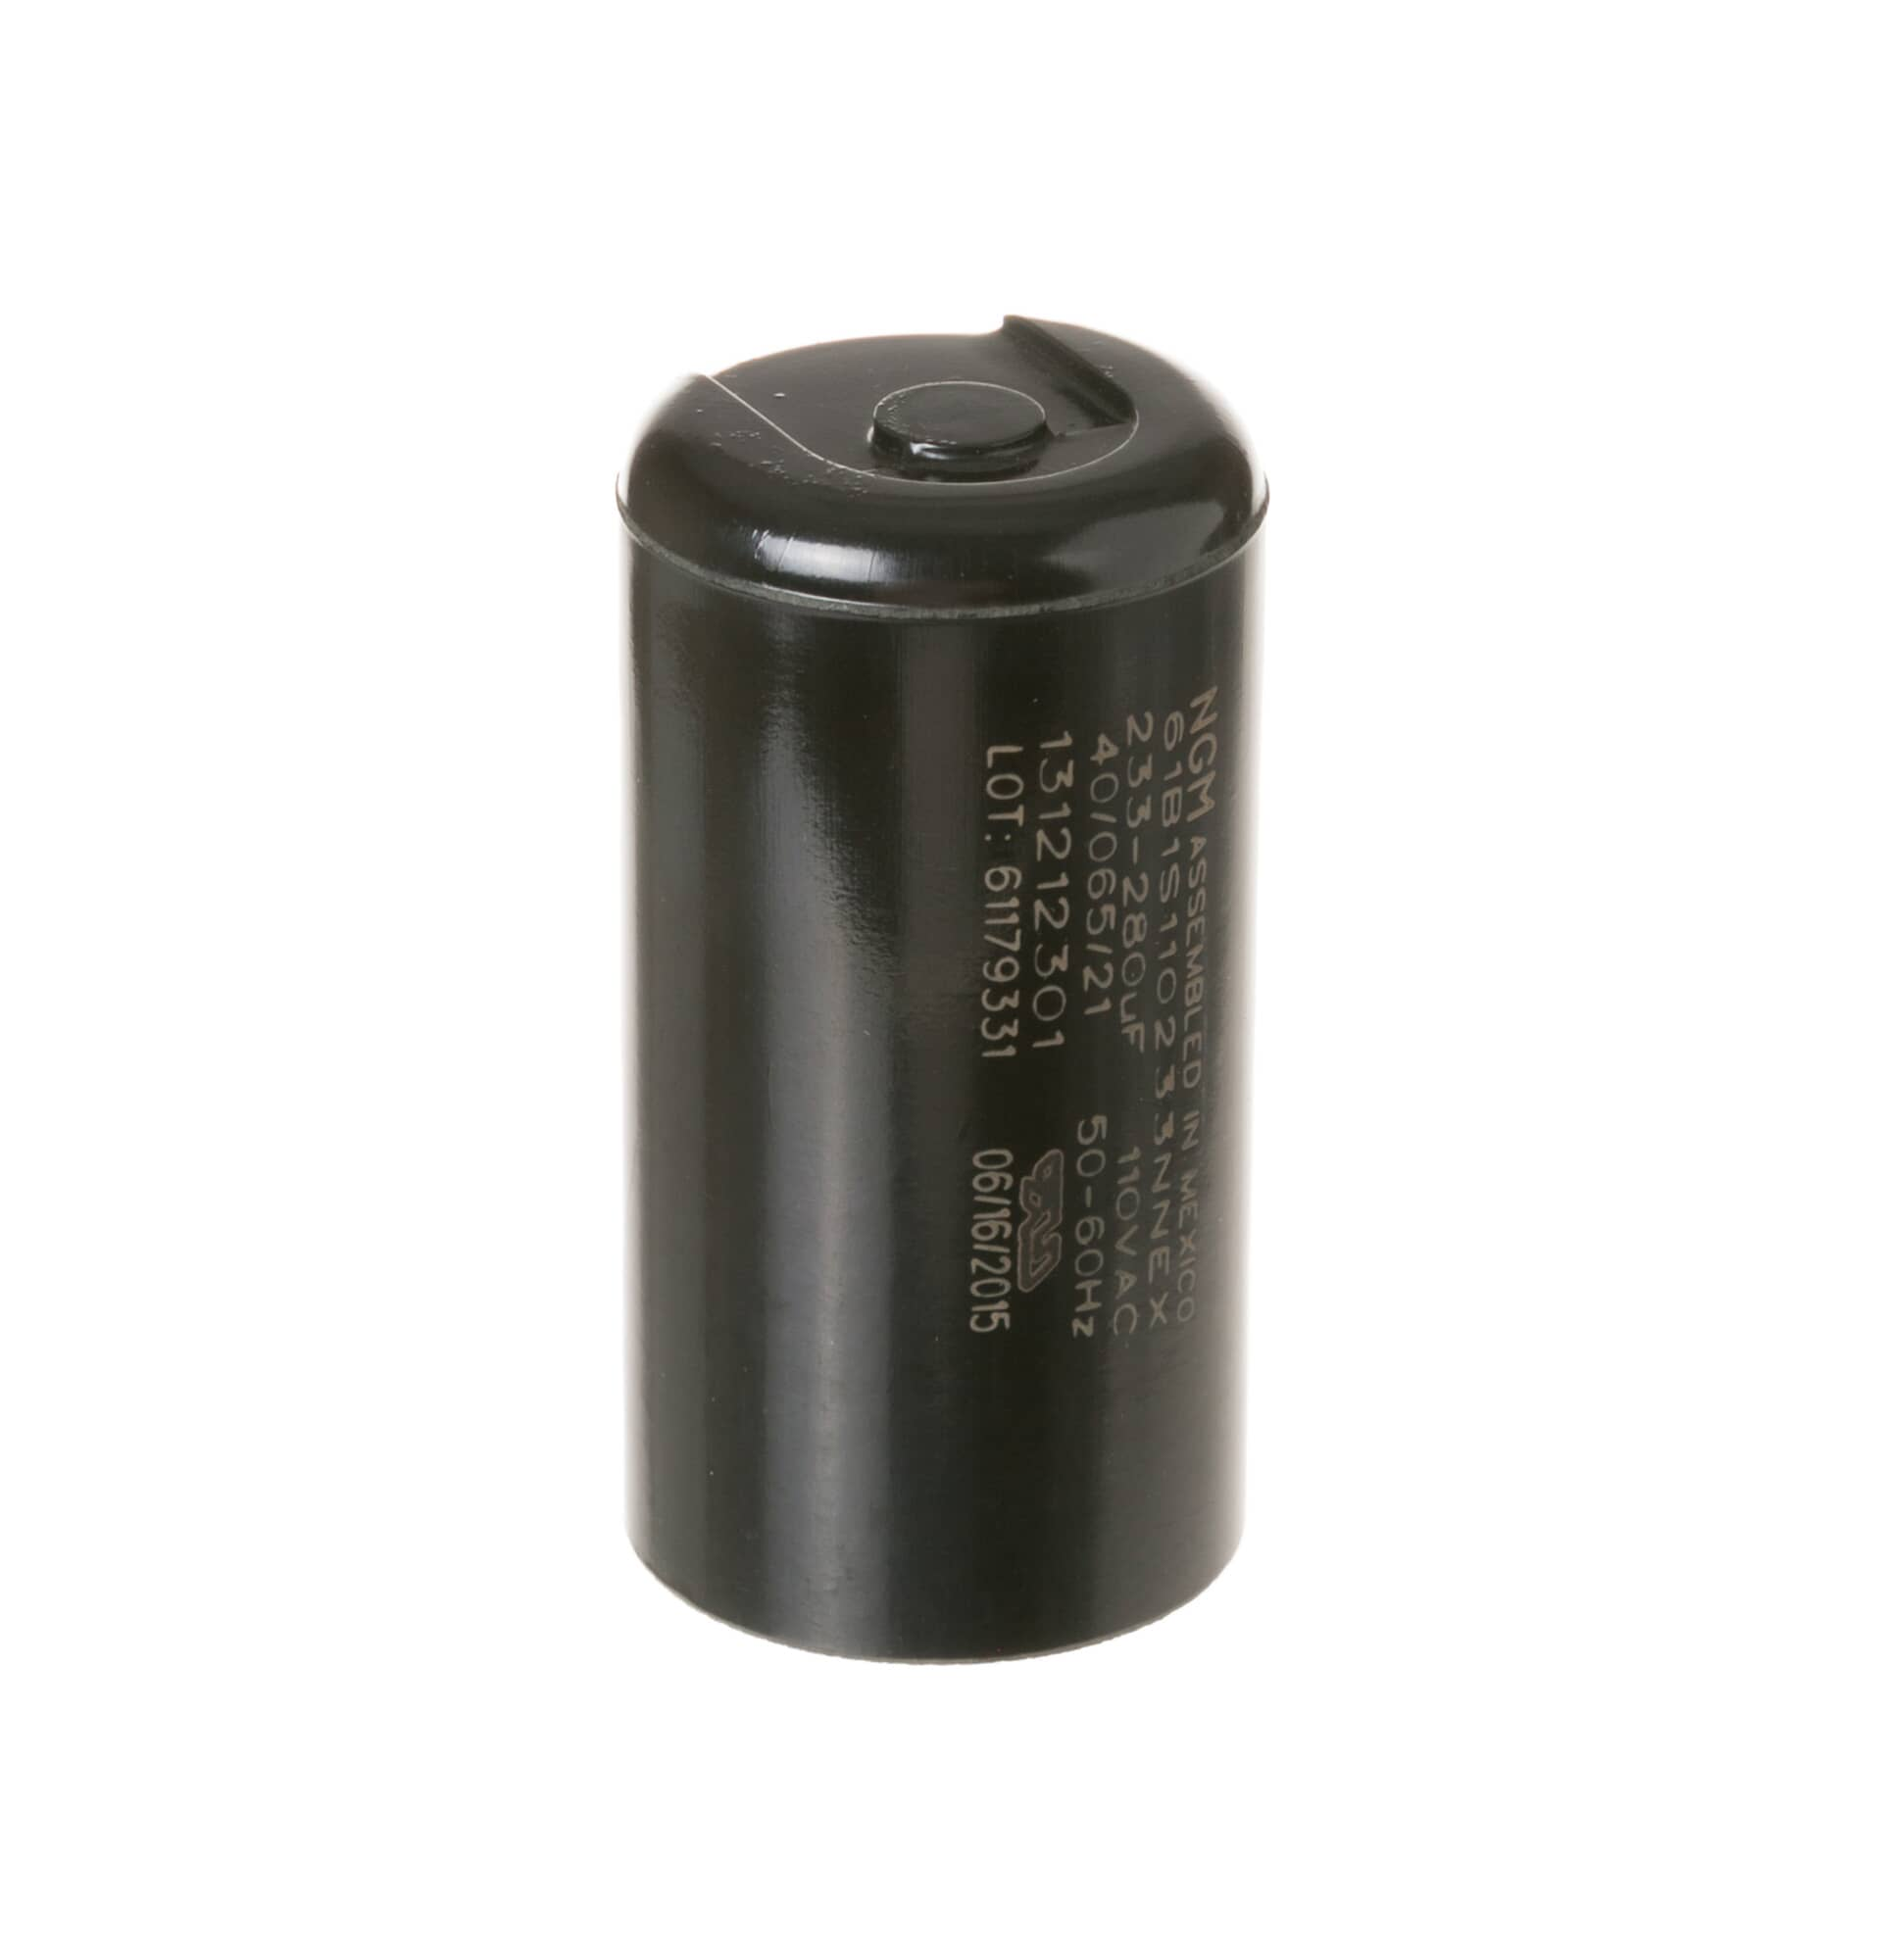 GE Appliance WH12X1001 CAPACITOR